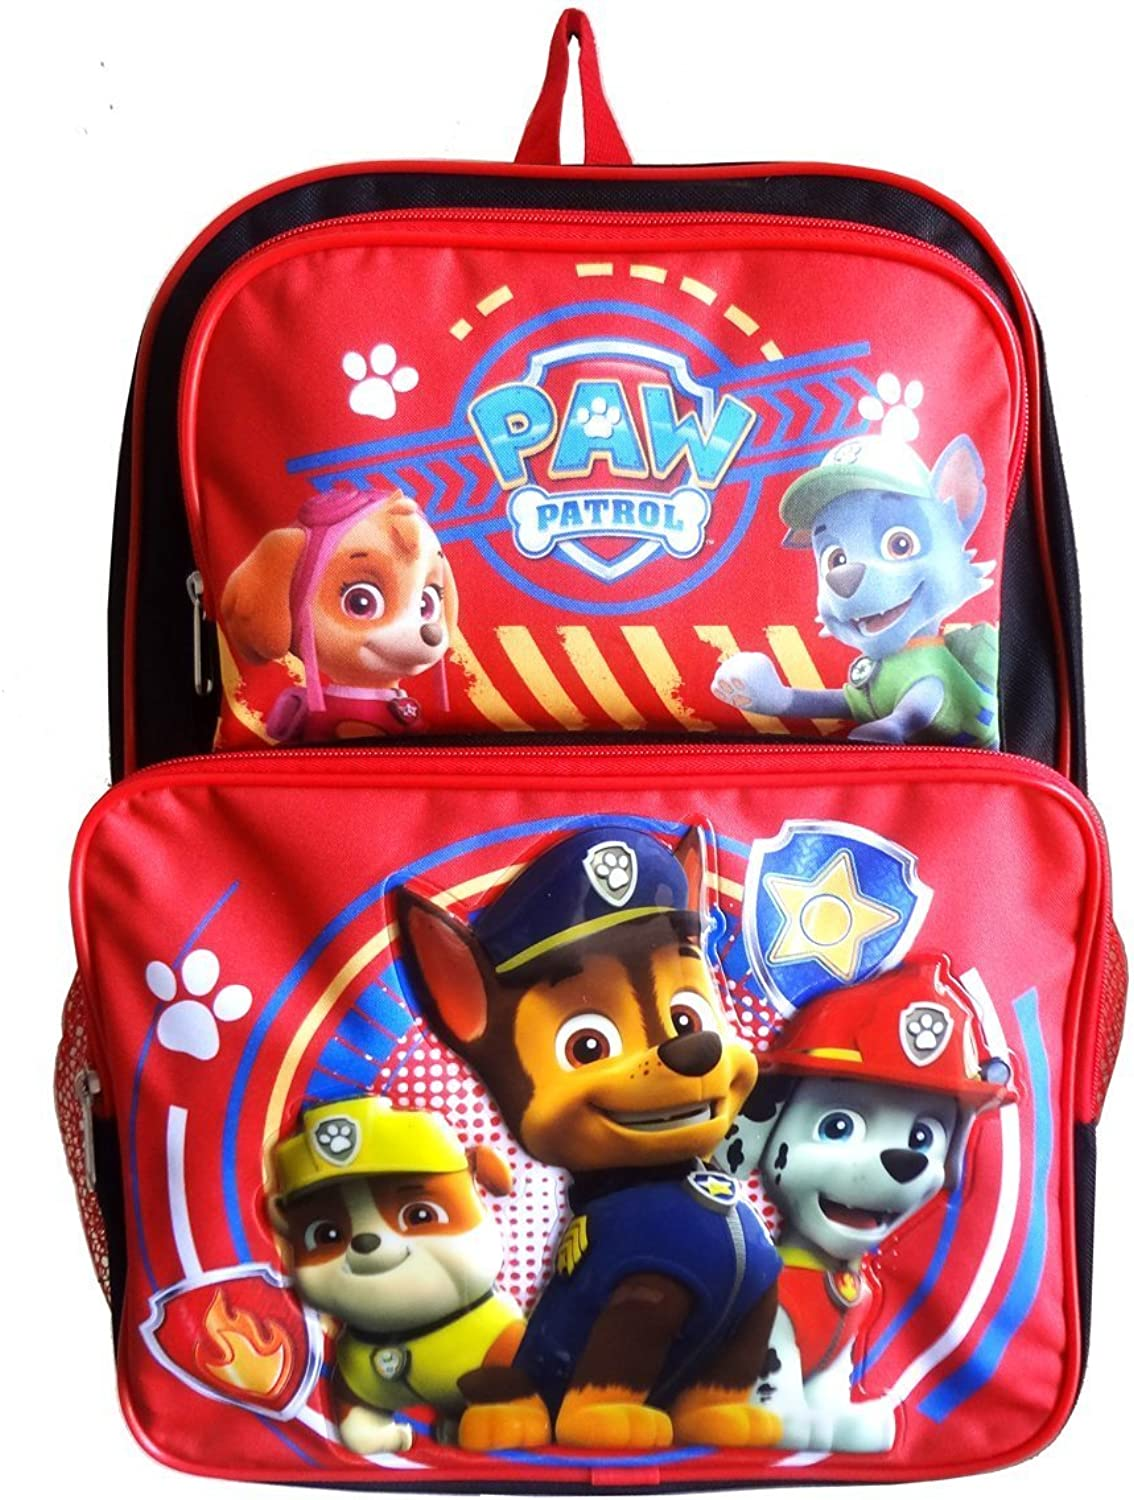 Paw Patrol 16 Cargo School Backpack Bag with Zipper Pocket Pocket Pocket - Chase, Marshall, Skye, Rocky, Rubble B010MQFSRG | Guter Markt